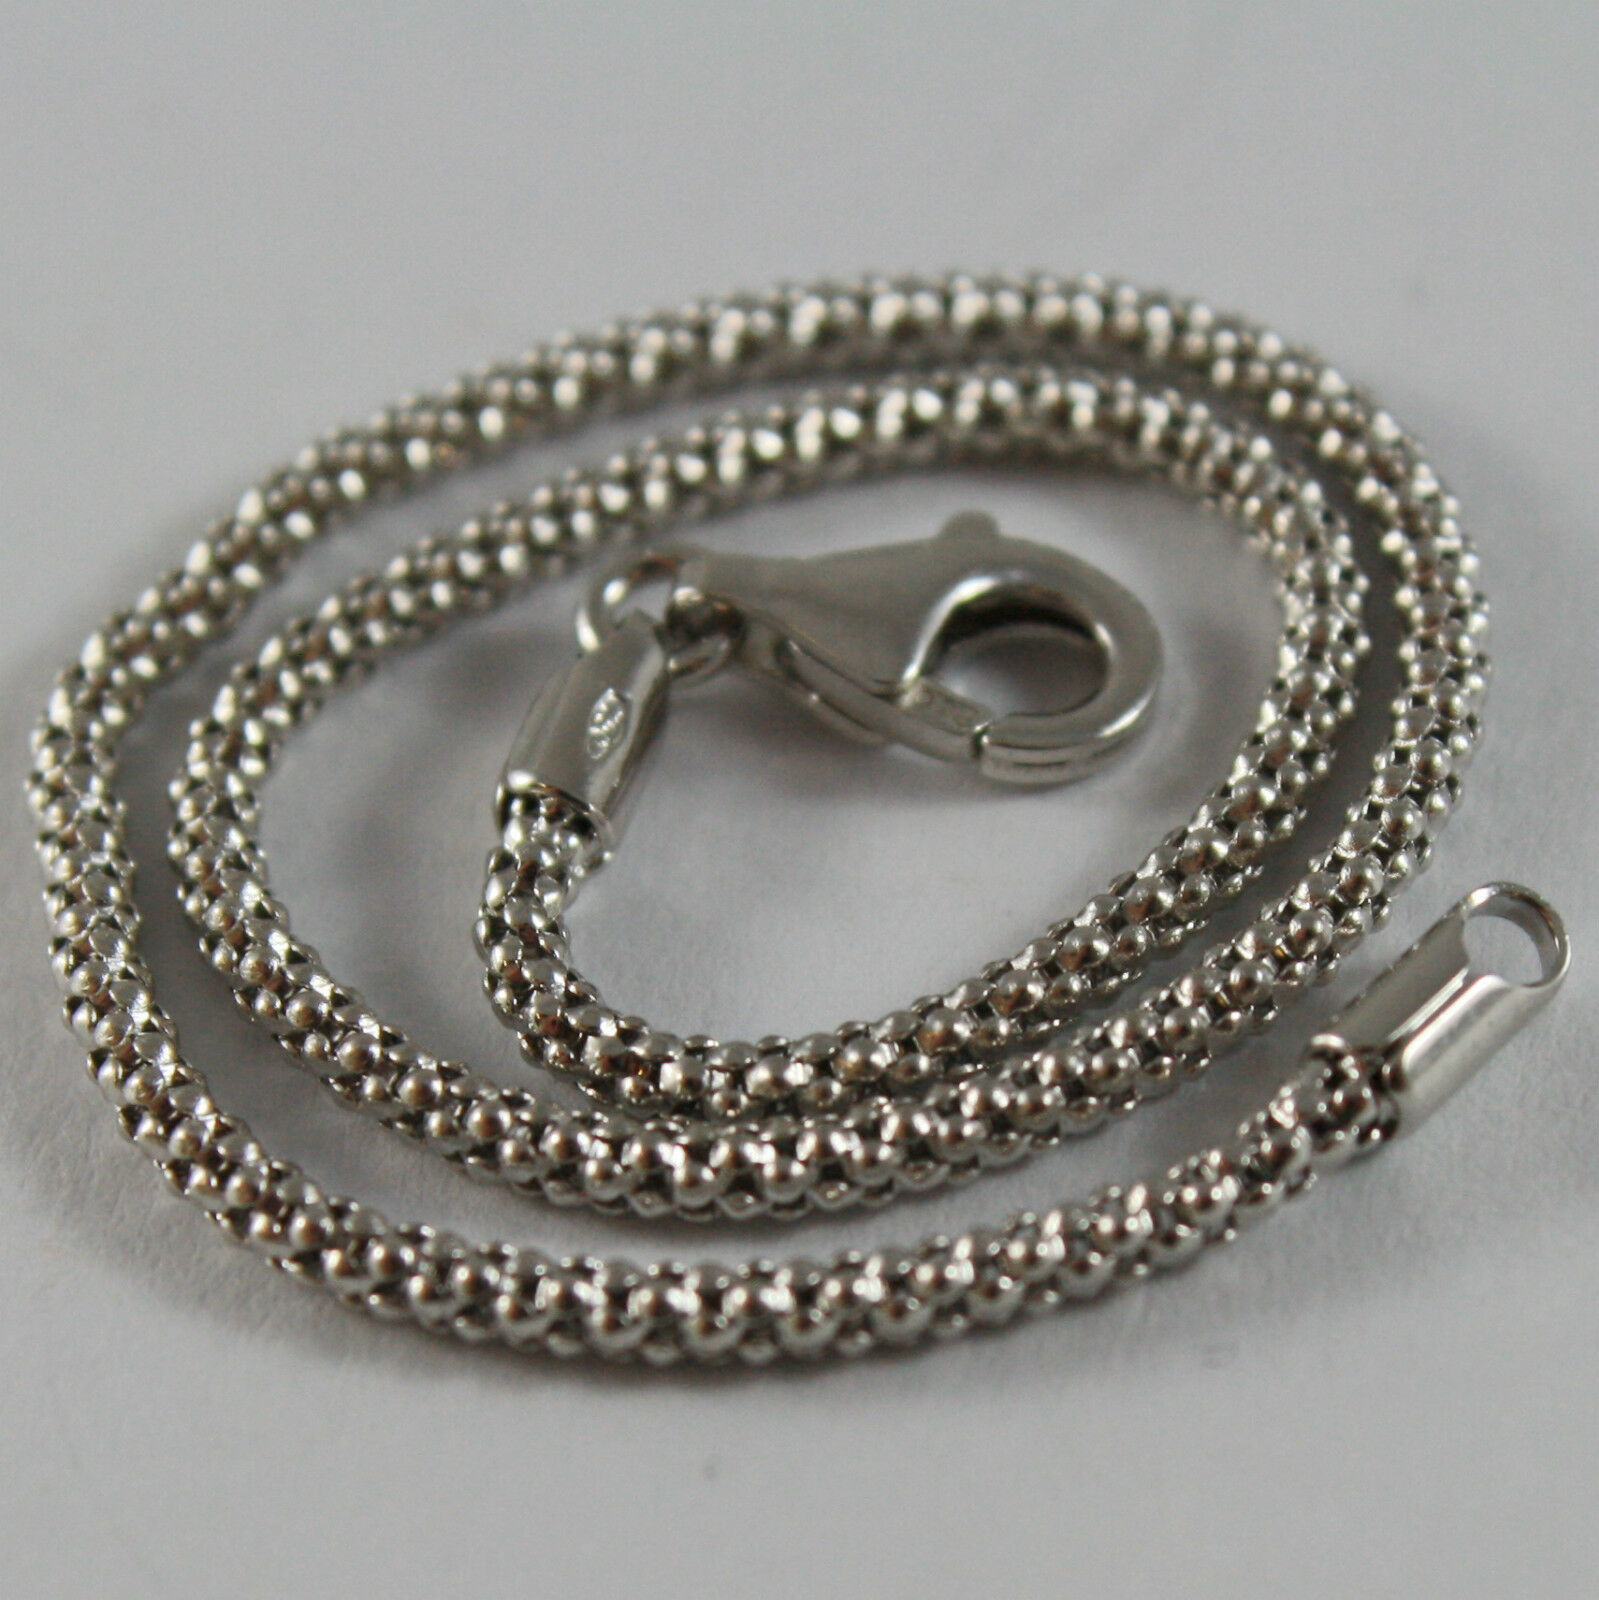 18K WHITE GOLD BRACELET, BASKET ROUND MESH, 7.50 INCHES LONG, MADE IN ITALY